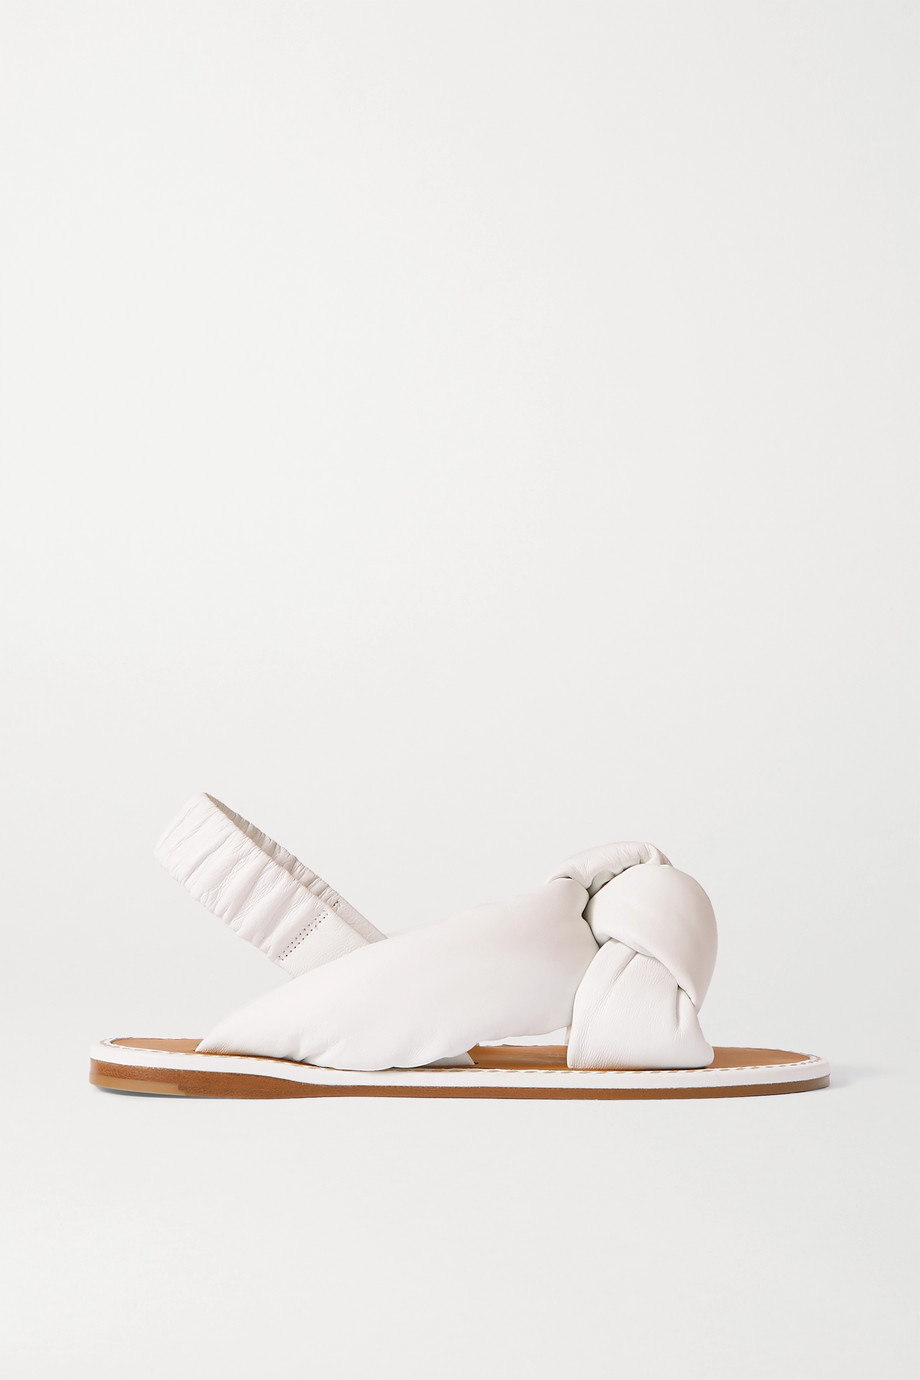 Miu Miu Knotted leather sandals